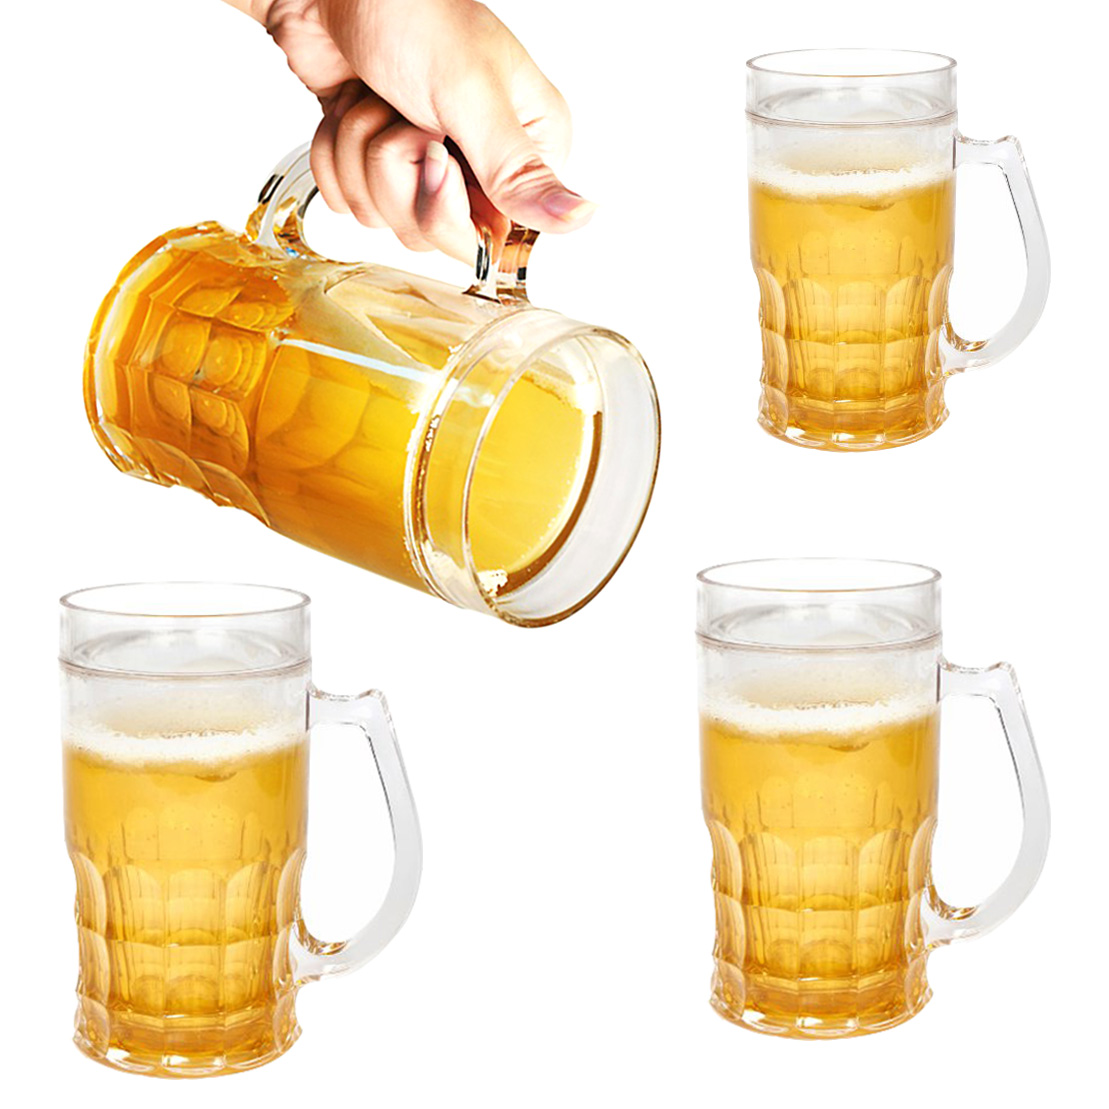 Set Of 4 Evri 13oz Plastic Insulated Funny Chill'R Beer Mugs Glasses For Freezer Novelty Silly